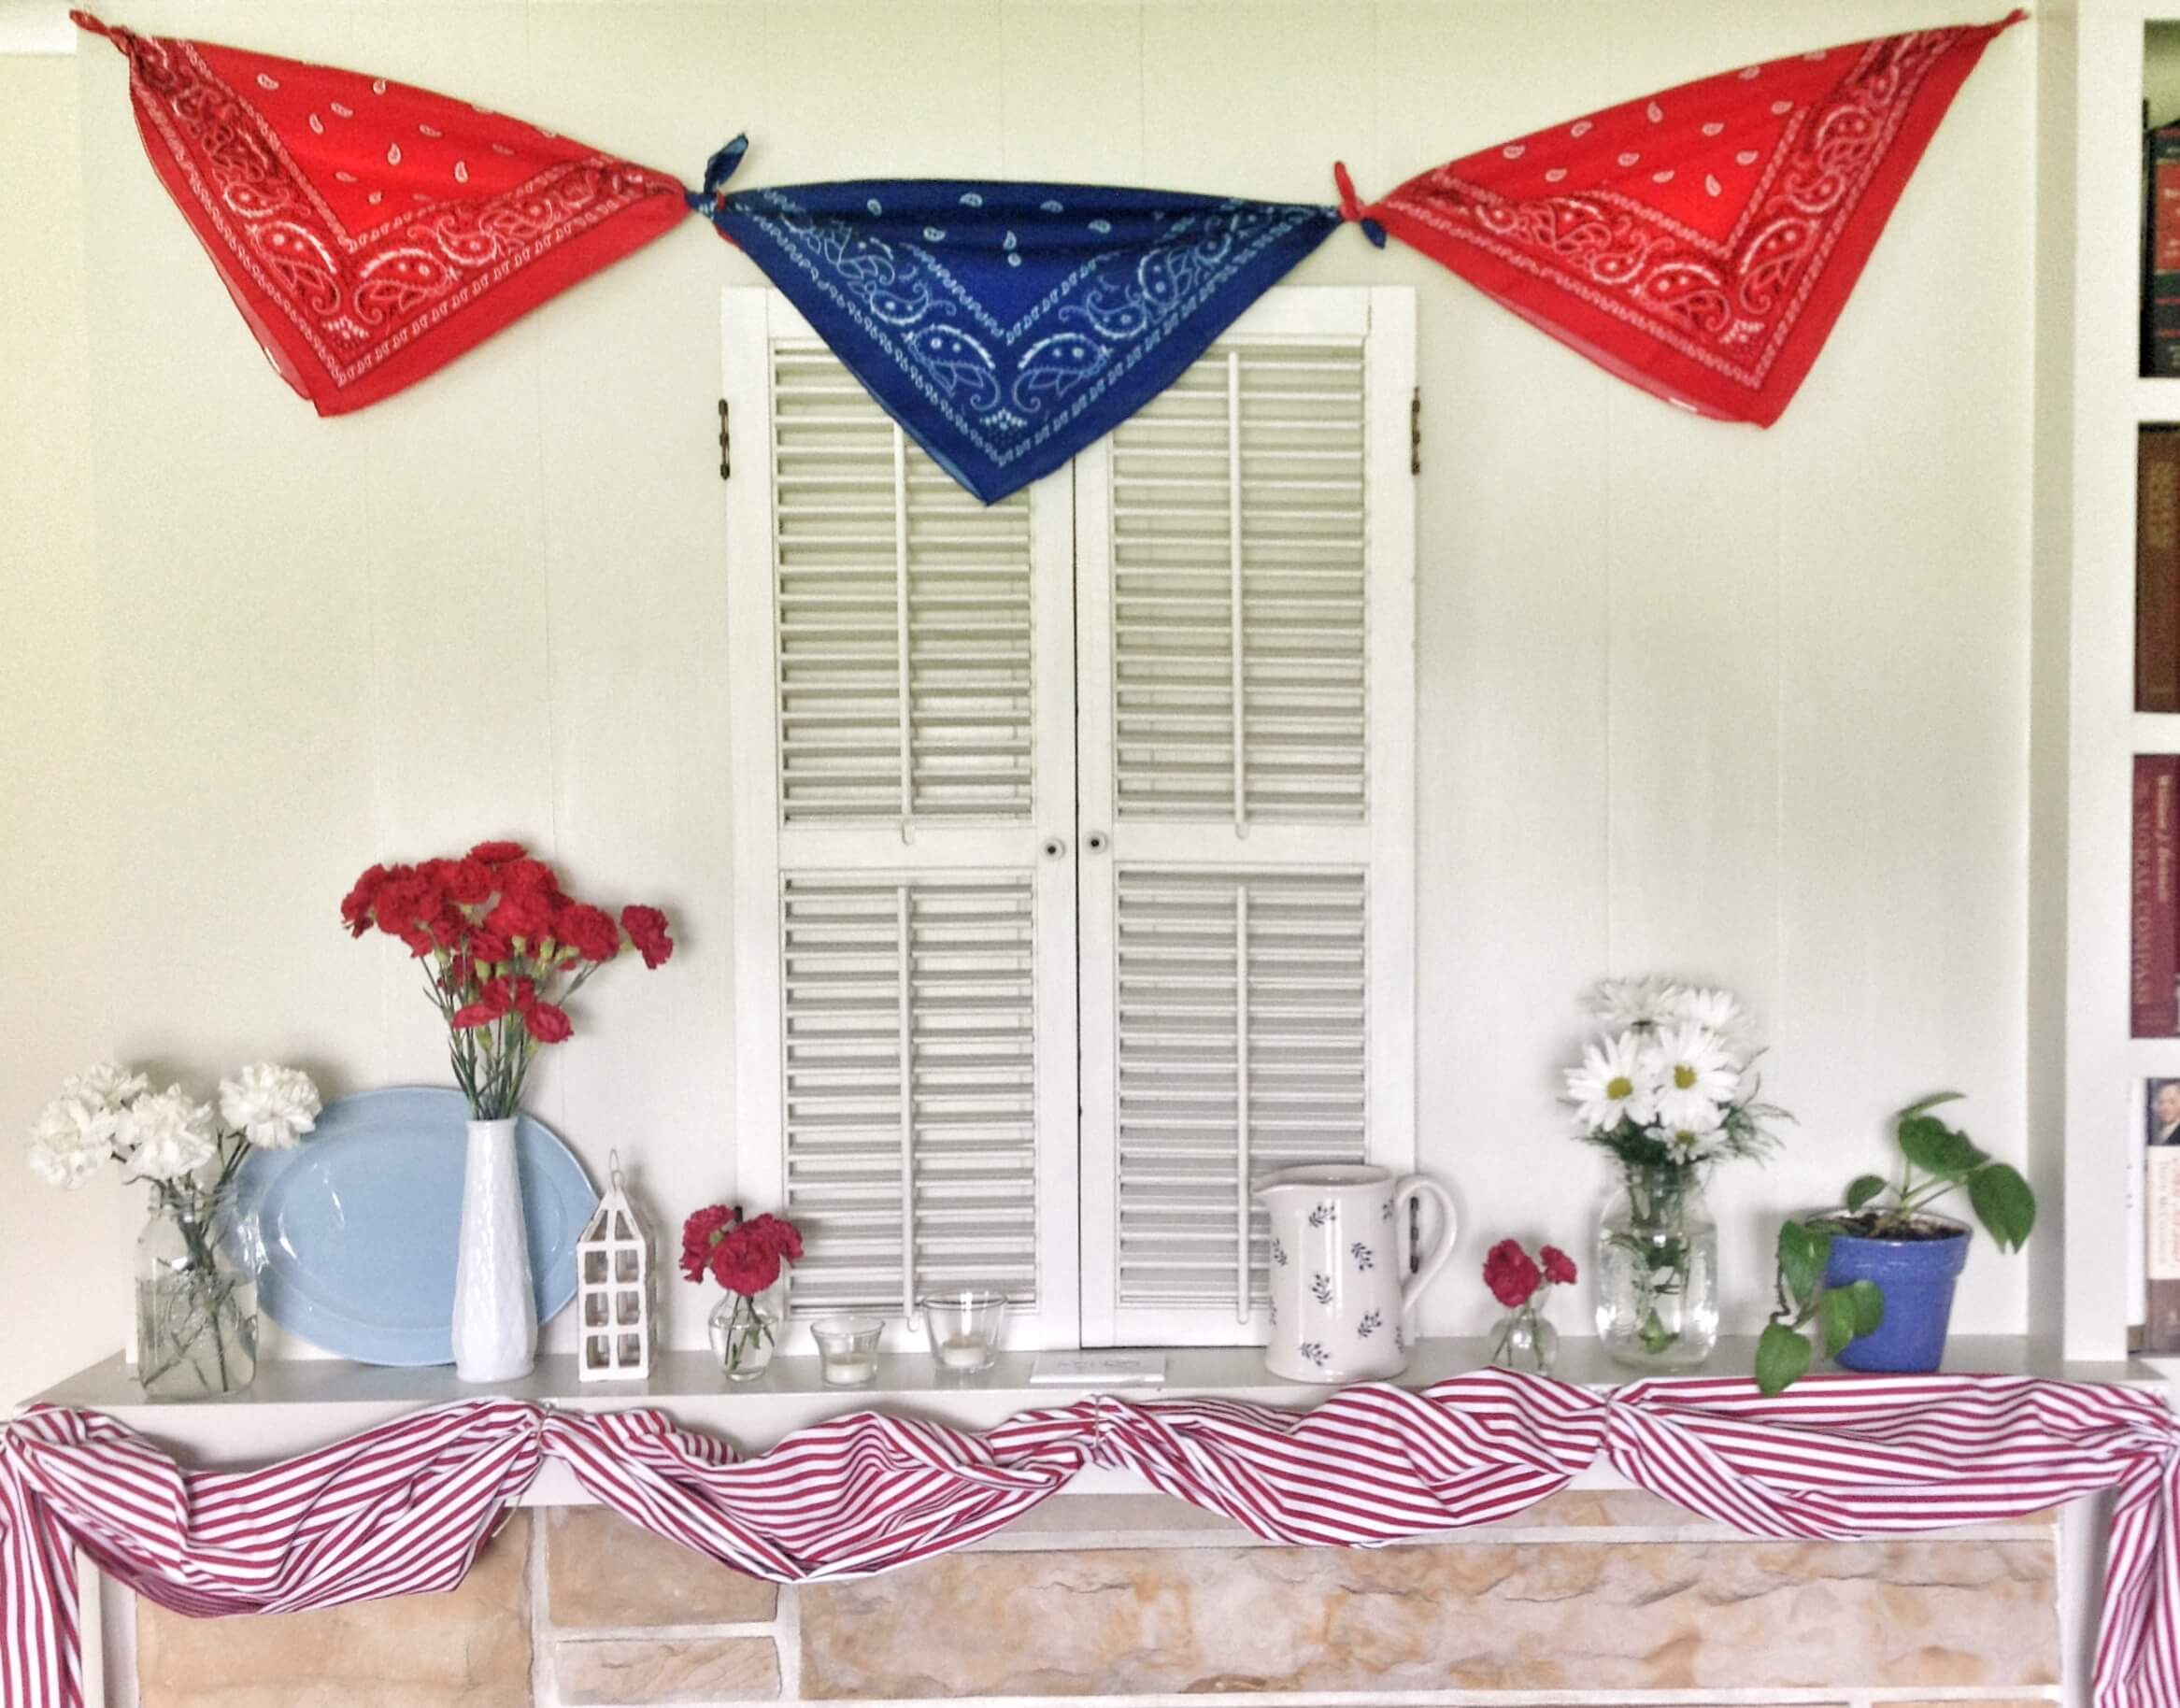 memorial day window painting